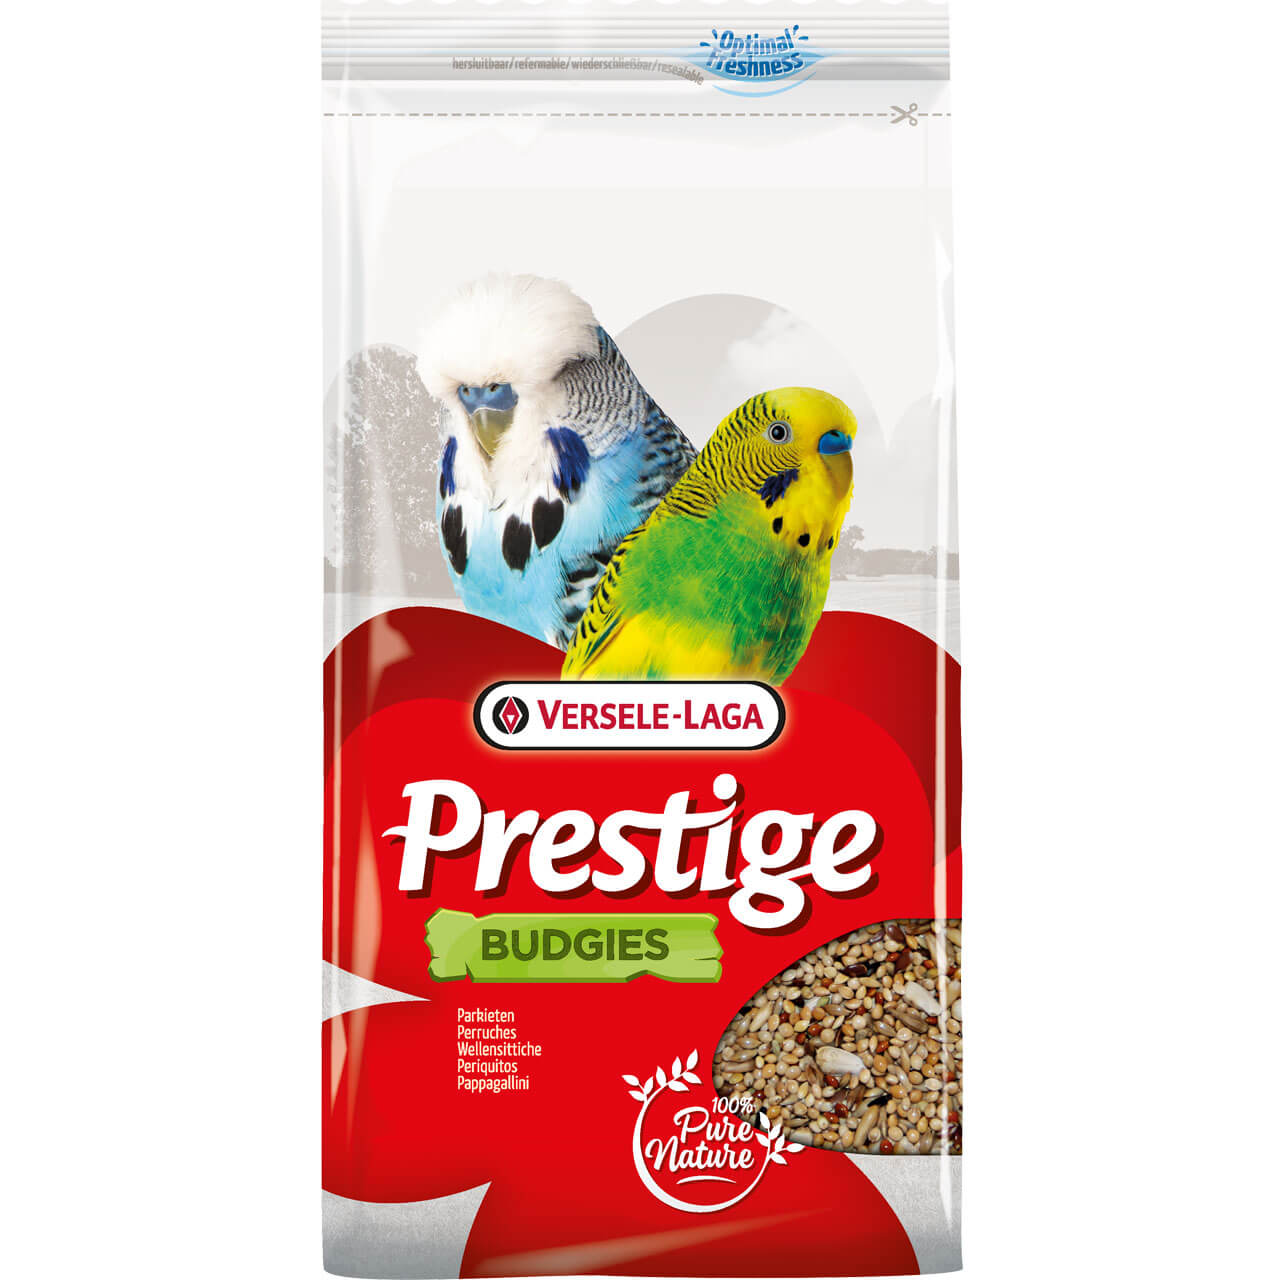 Prestige Wellensittiche